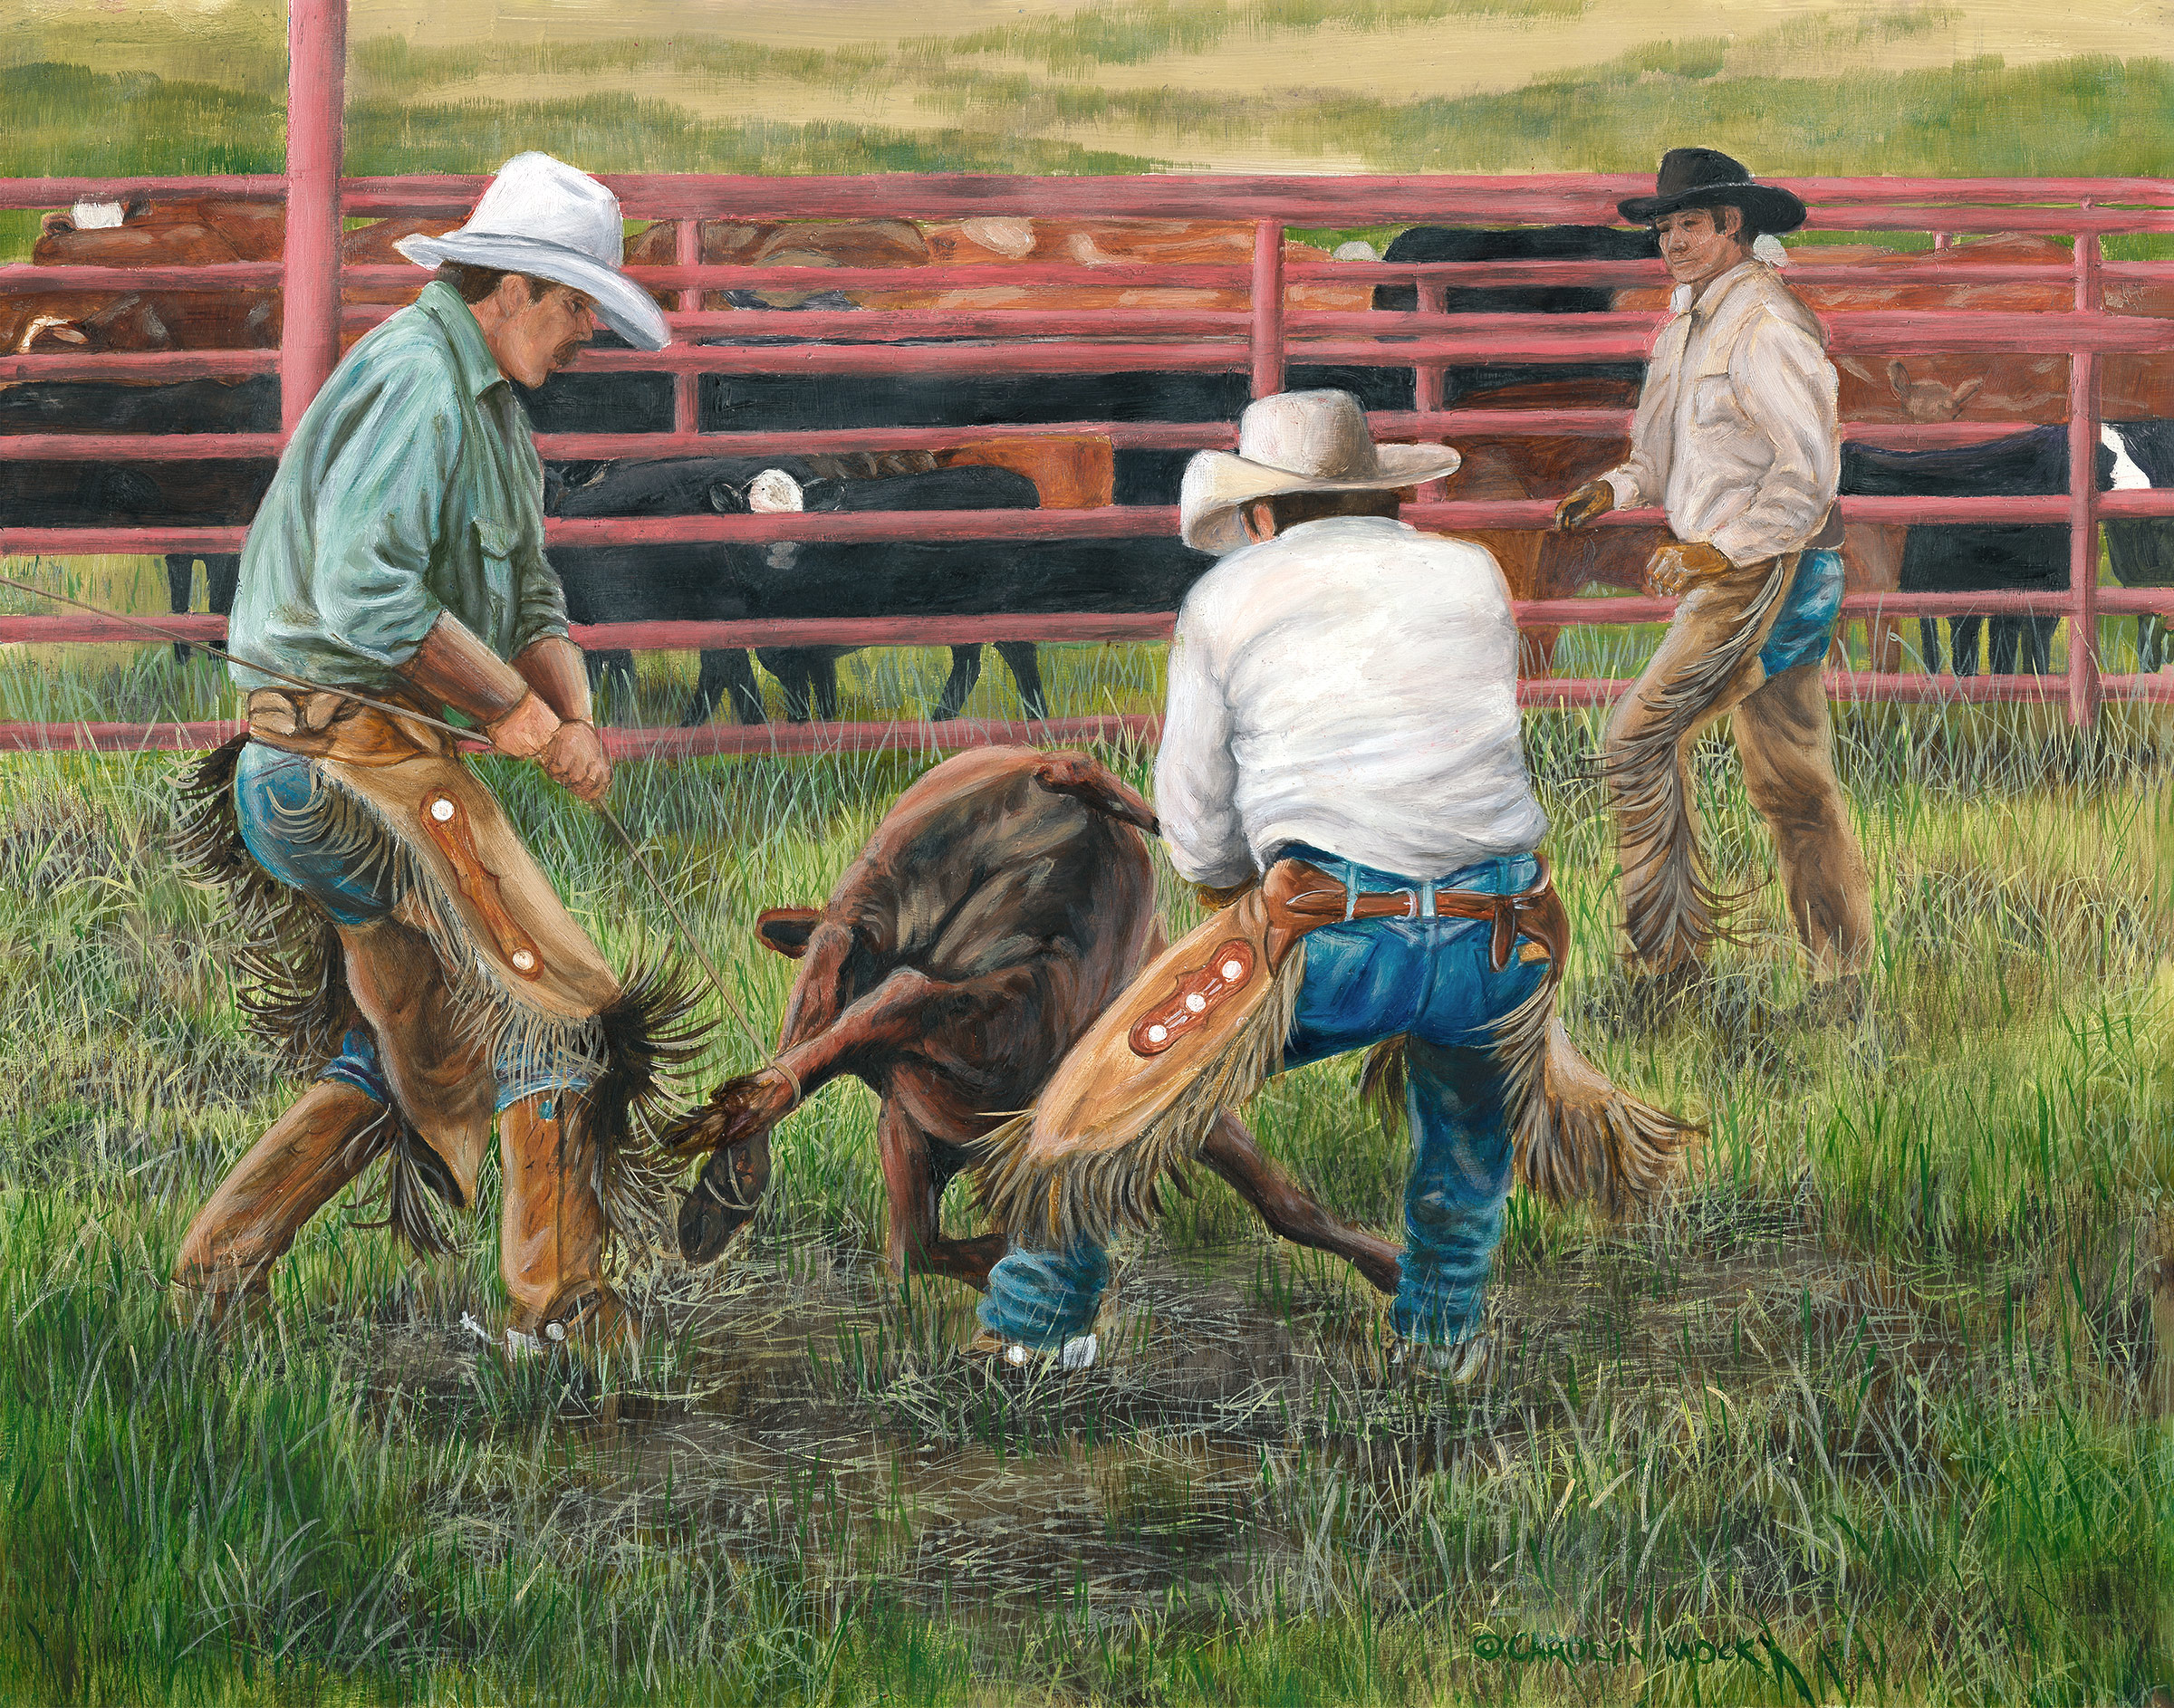 Three cowboys tie up a calf